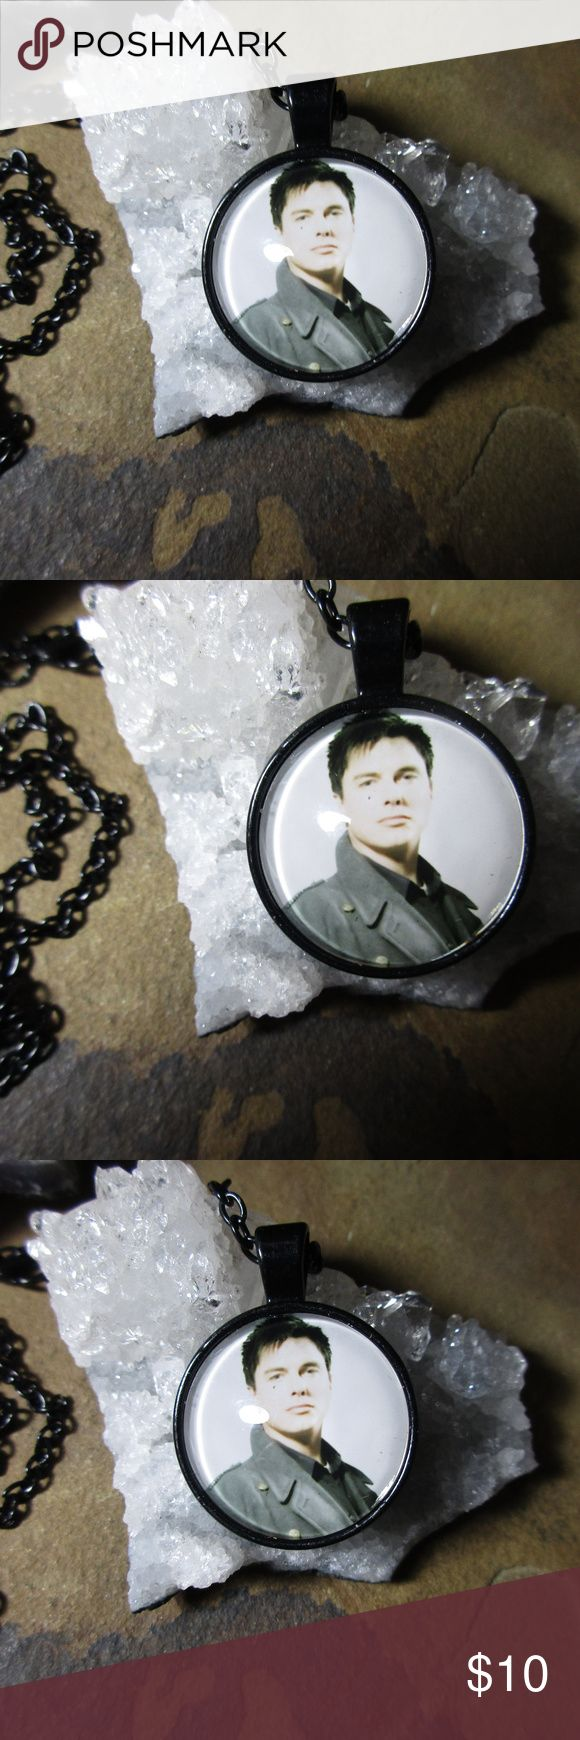 Jack Harkness Capitain Jack Doctor Who Torchwood Jack Harkness Capitain Jack Doctor Who Torchwood, the biggest rascal in the universe. Famous for his roles in both Doctor Who and the spin off series Torchwood, this is a great pendant necklace in black on a 20 inch chain with his likeness in his blue woolen coat. Accessories Jewelry